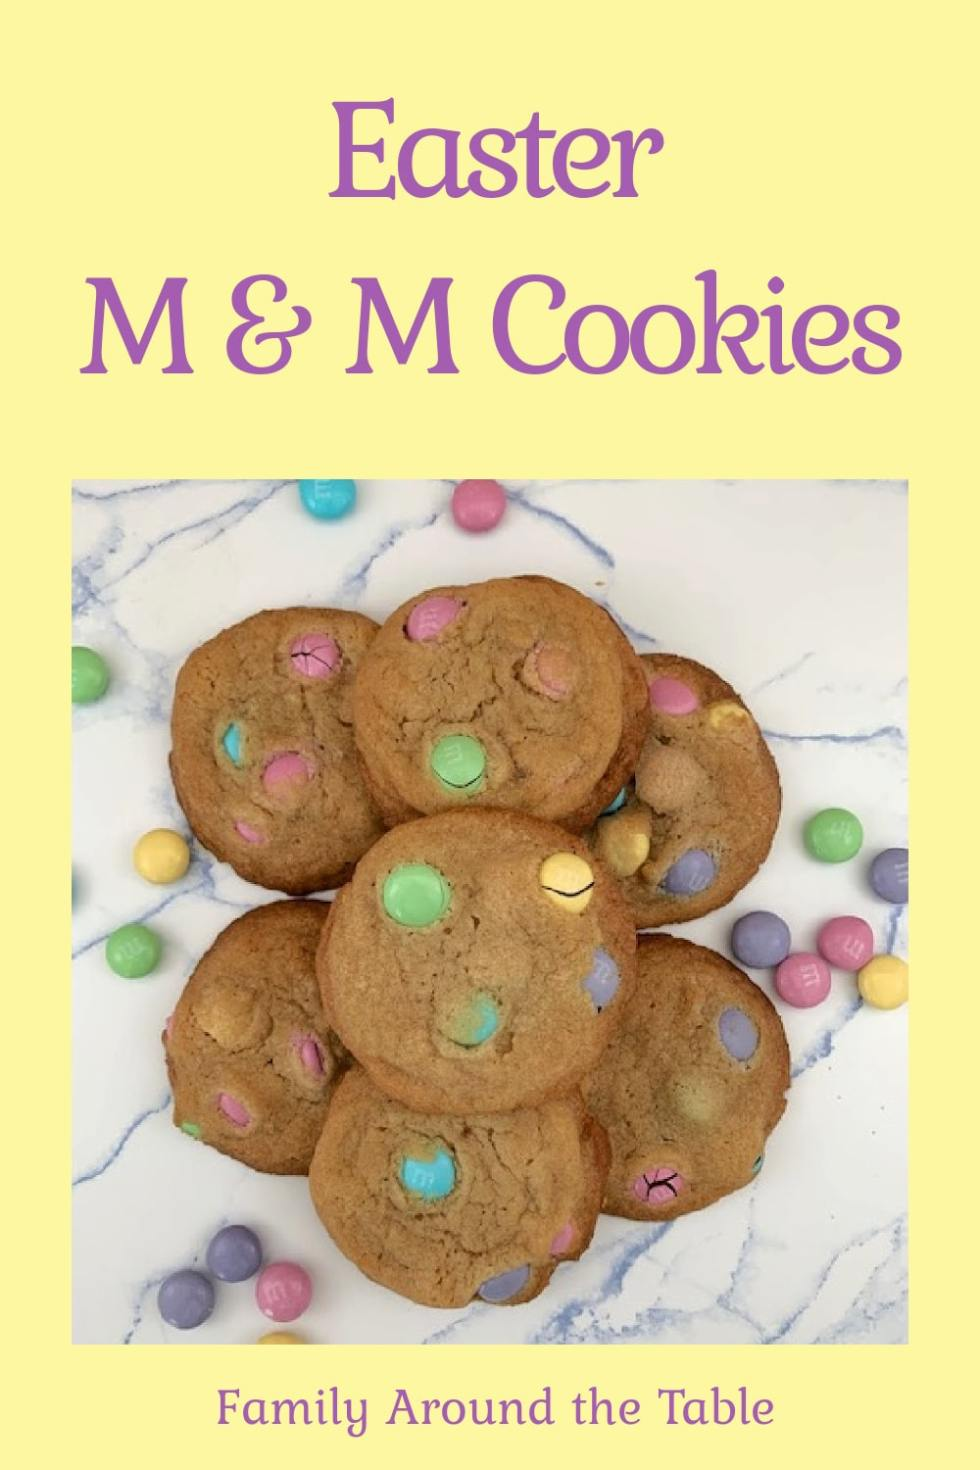 Easter M&M Cookies Pinterest Image